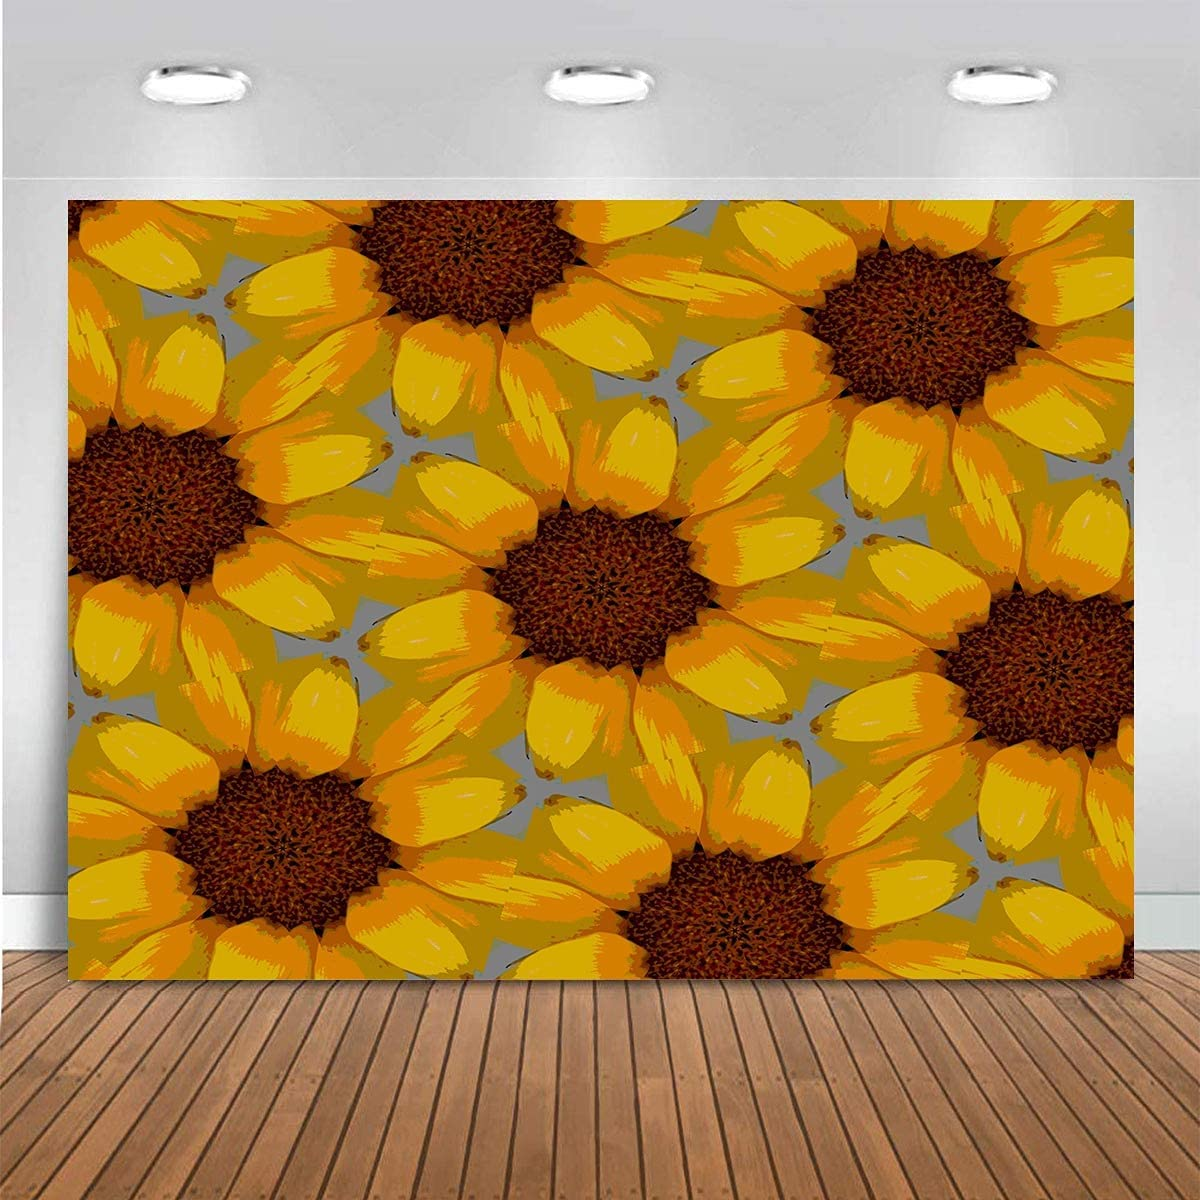 Claiyi Sunflowers Backdrop Seasonal Wrap Introduction Floral Sunflower Photography Max 61% OFF